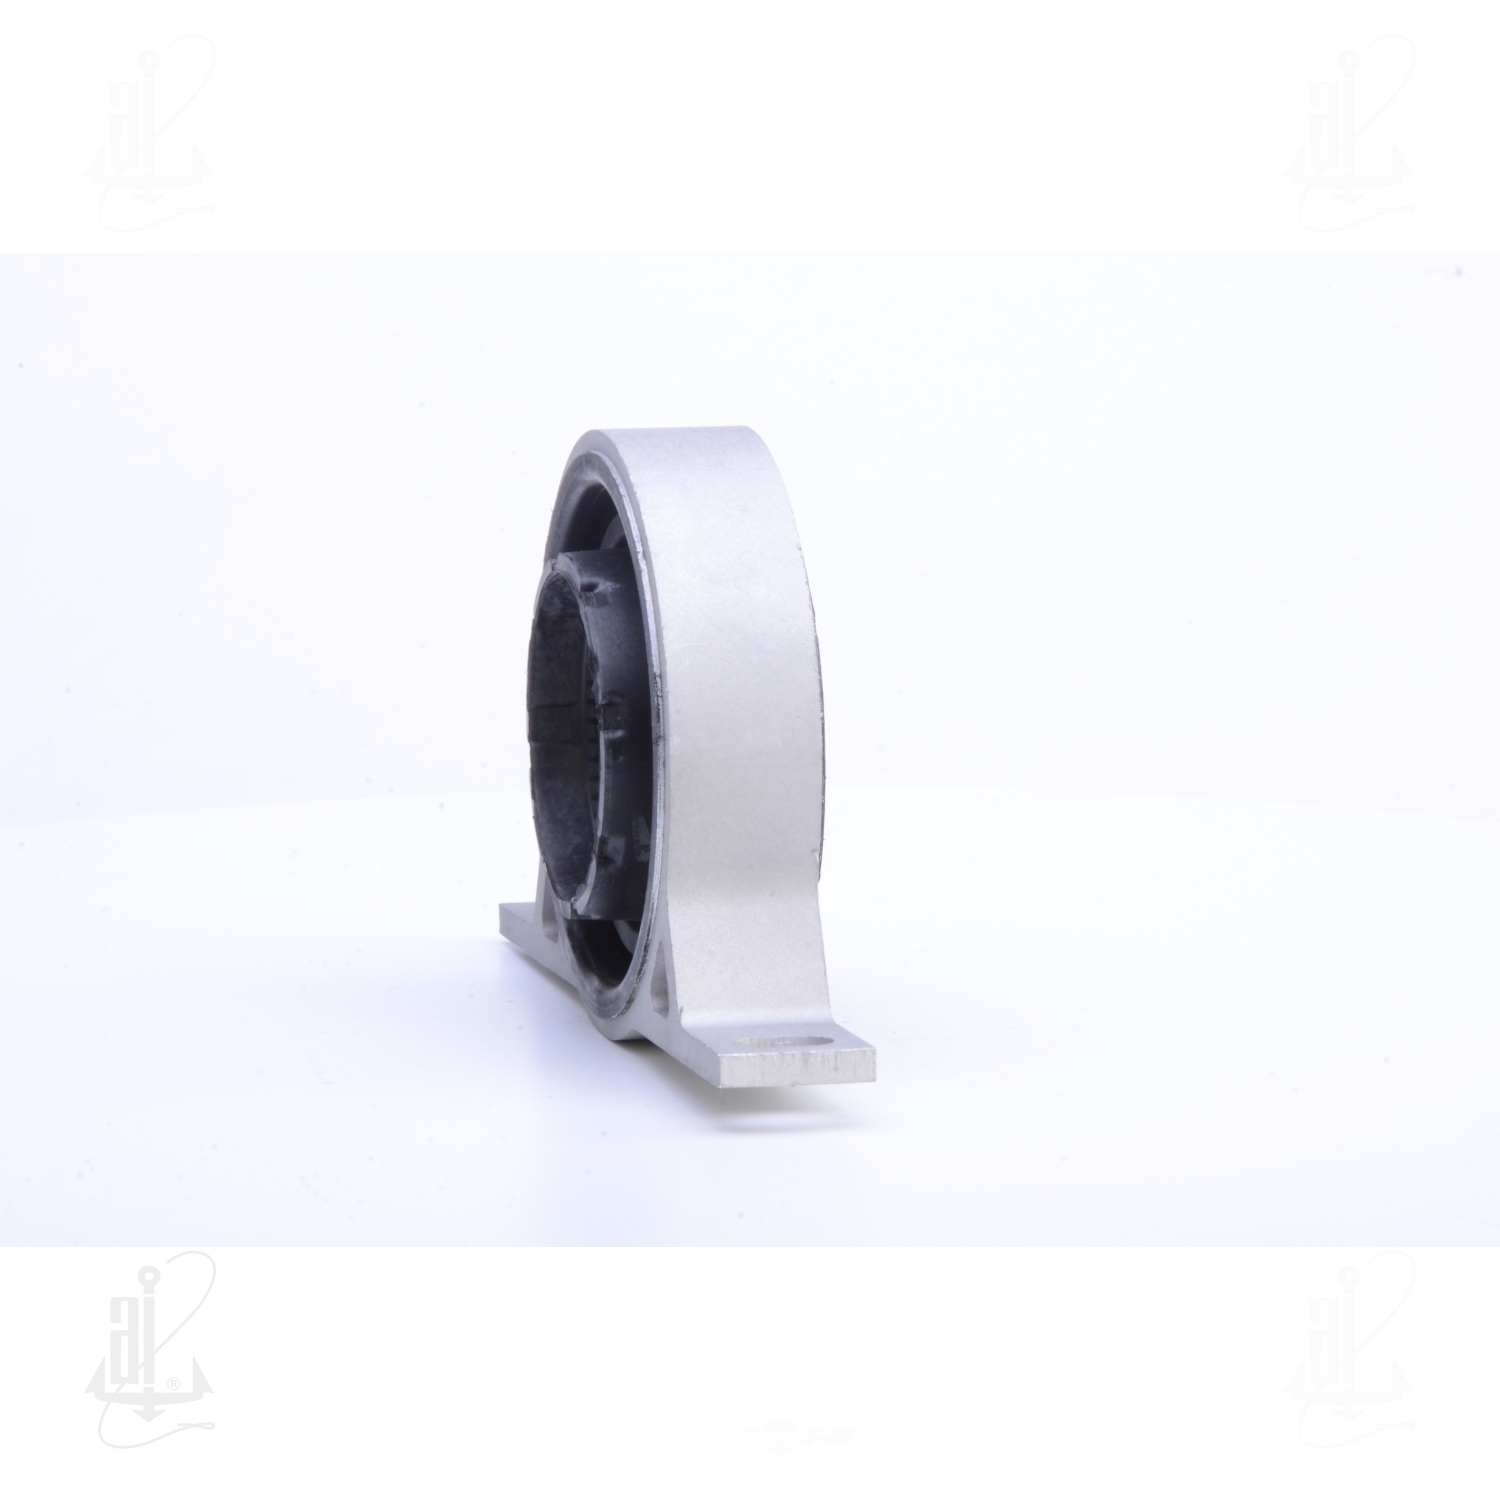 ANCHOR - Drive Shaft Center Support Bearing - ANH 6089